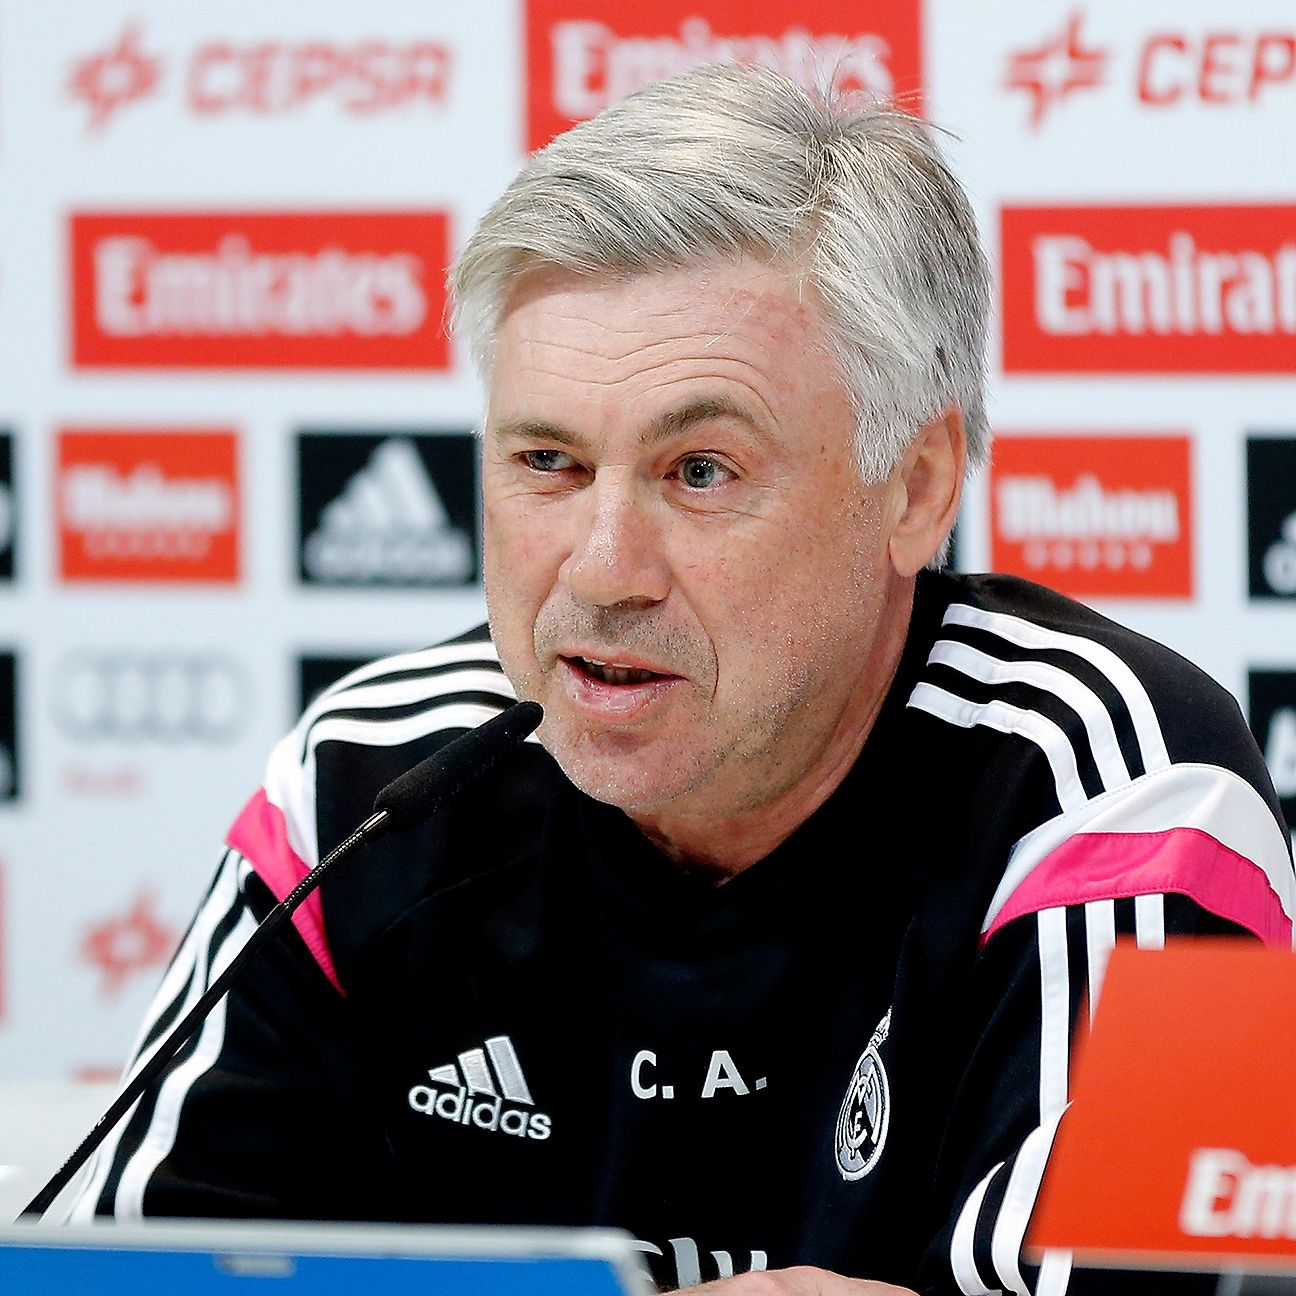 Manager Carlo Ancelotti has made it abundantly clear who plays at Real Madrid and who does not.